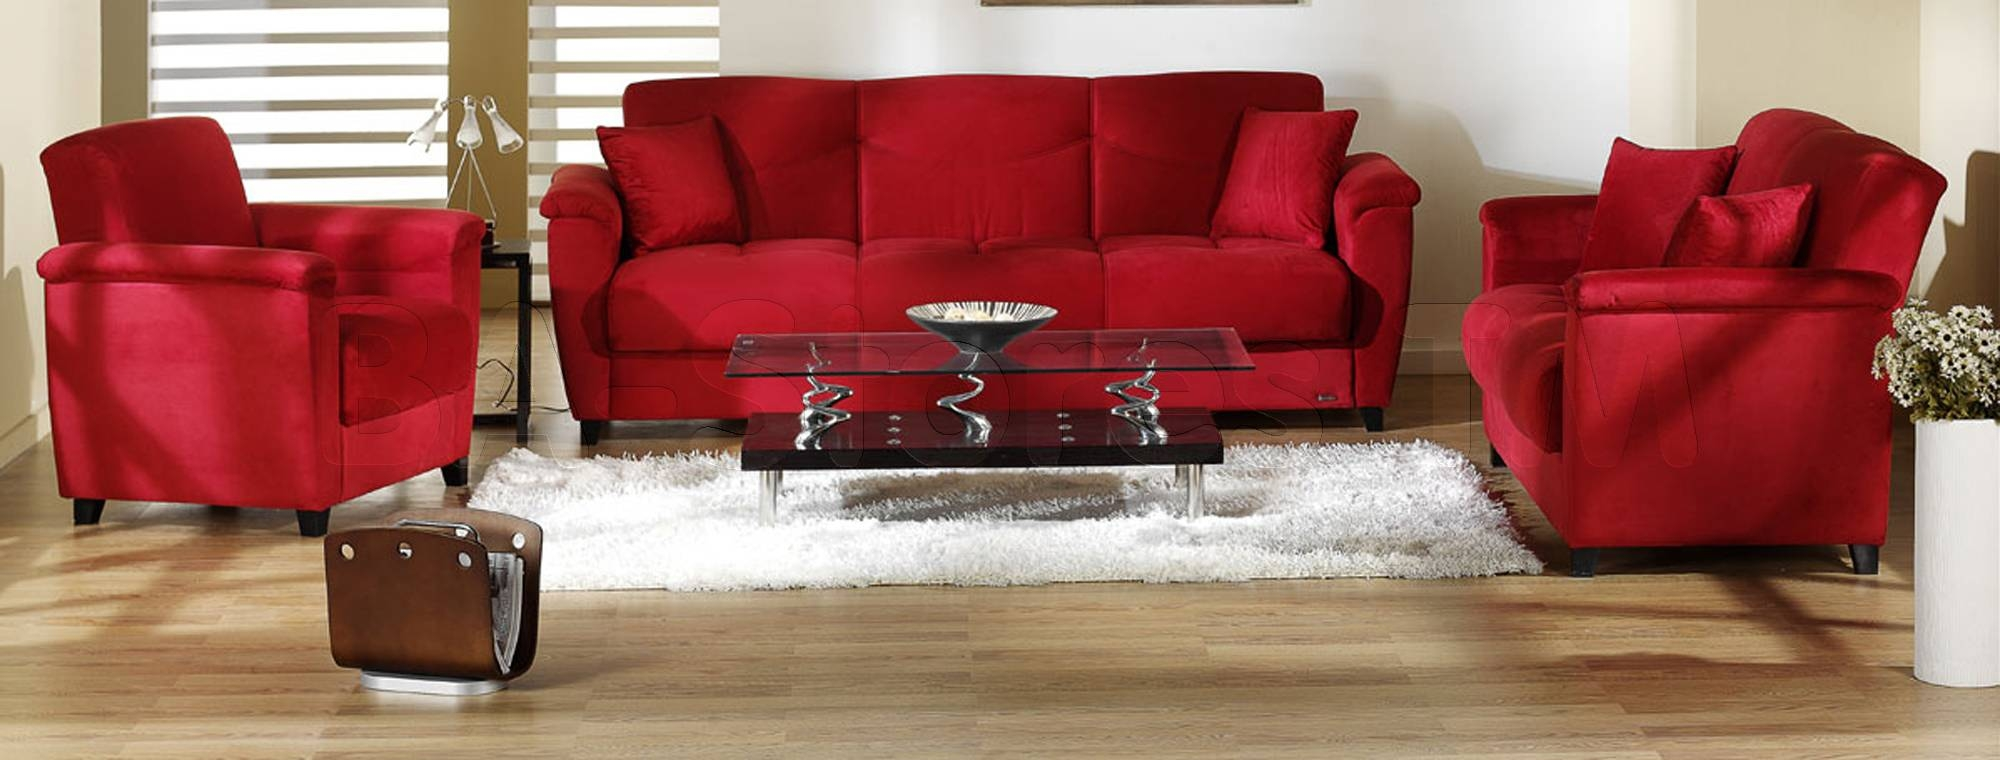 Red Sofa Decor Images Of Photo Albums Red Living Room Furniture with regard to Red Sofa Chairs (Image 18 of 30)